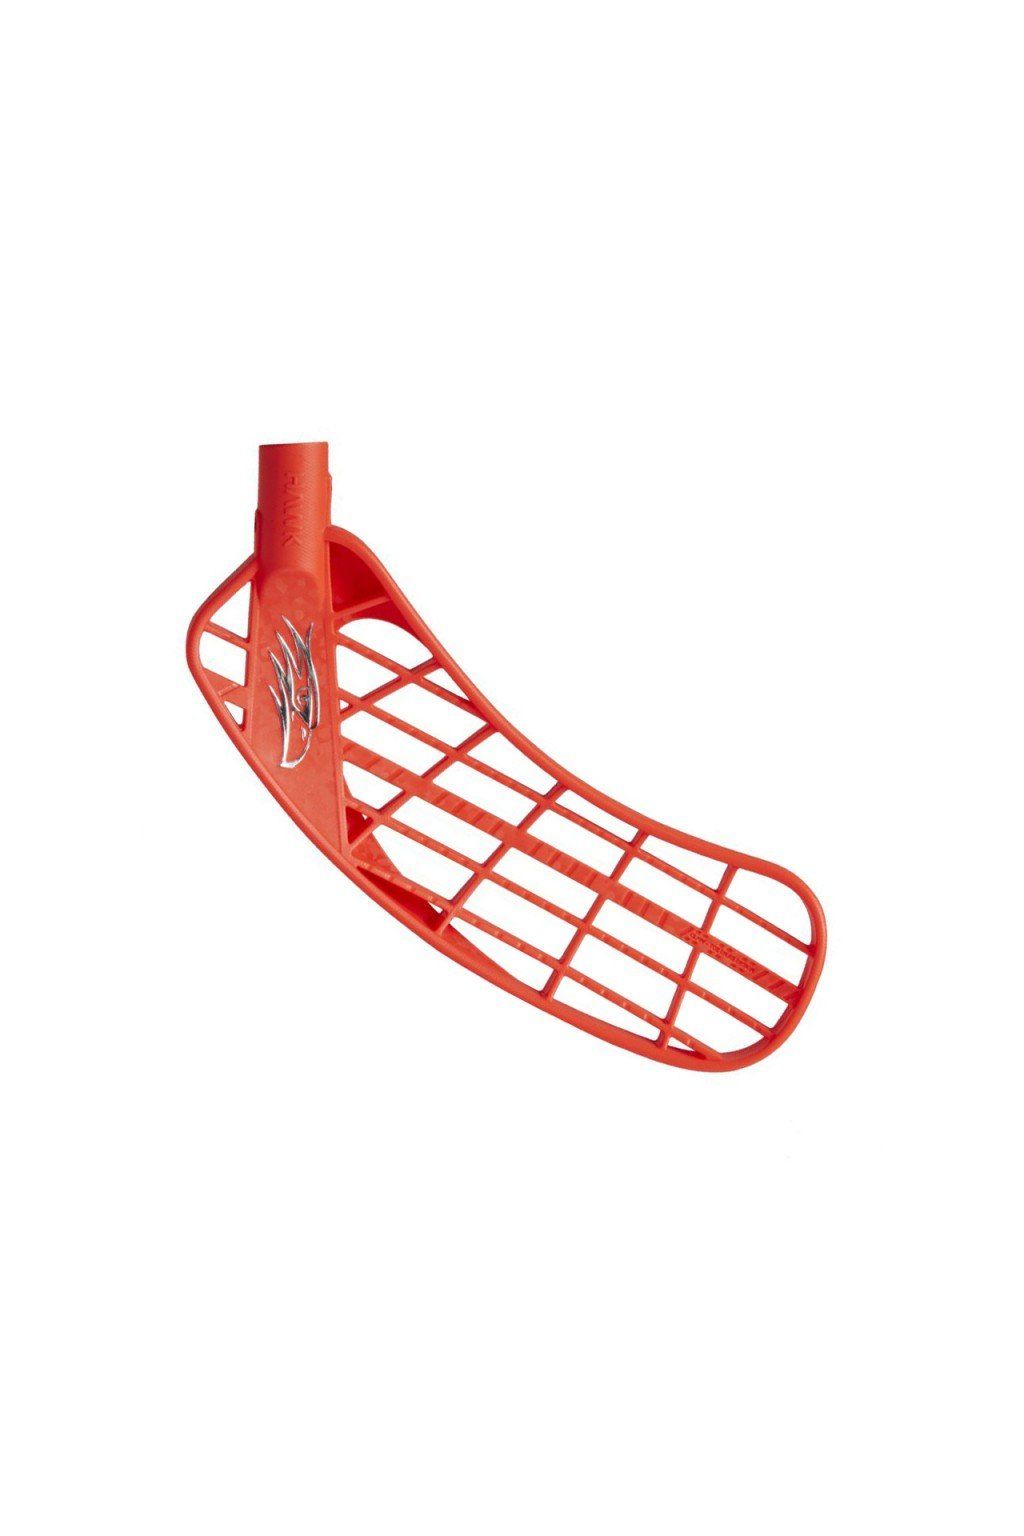 salming hawk blade touch plus red l